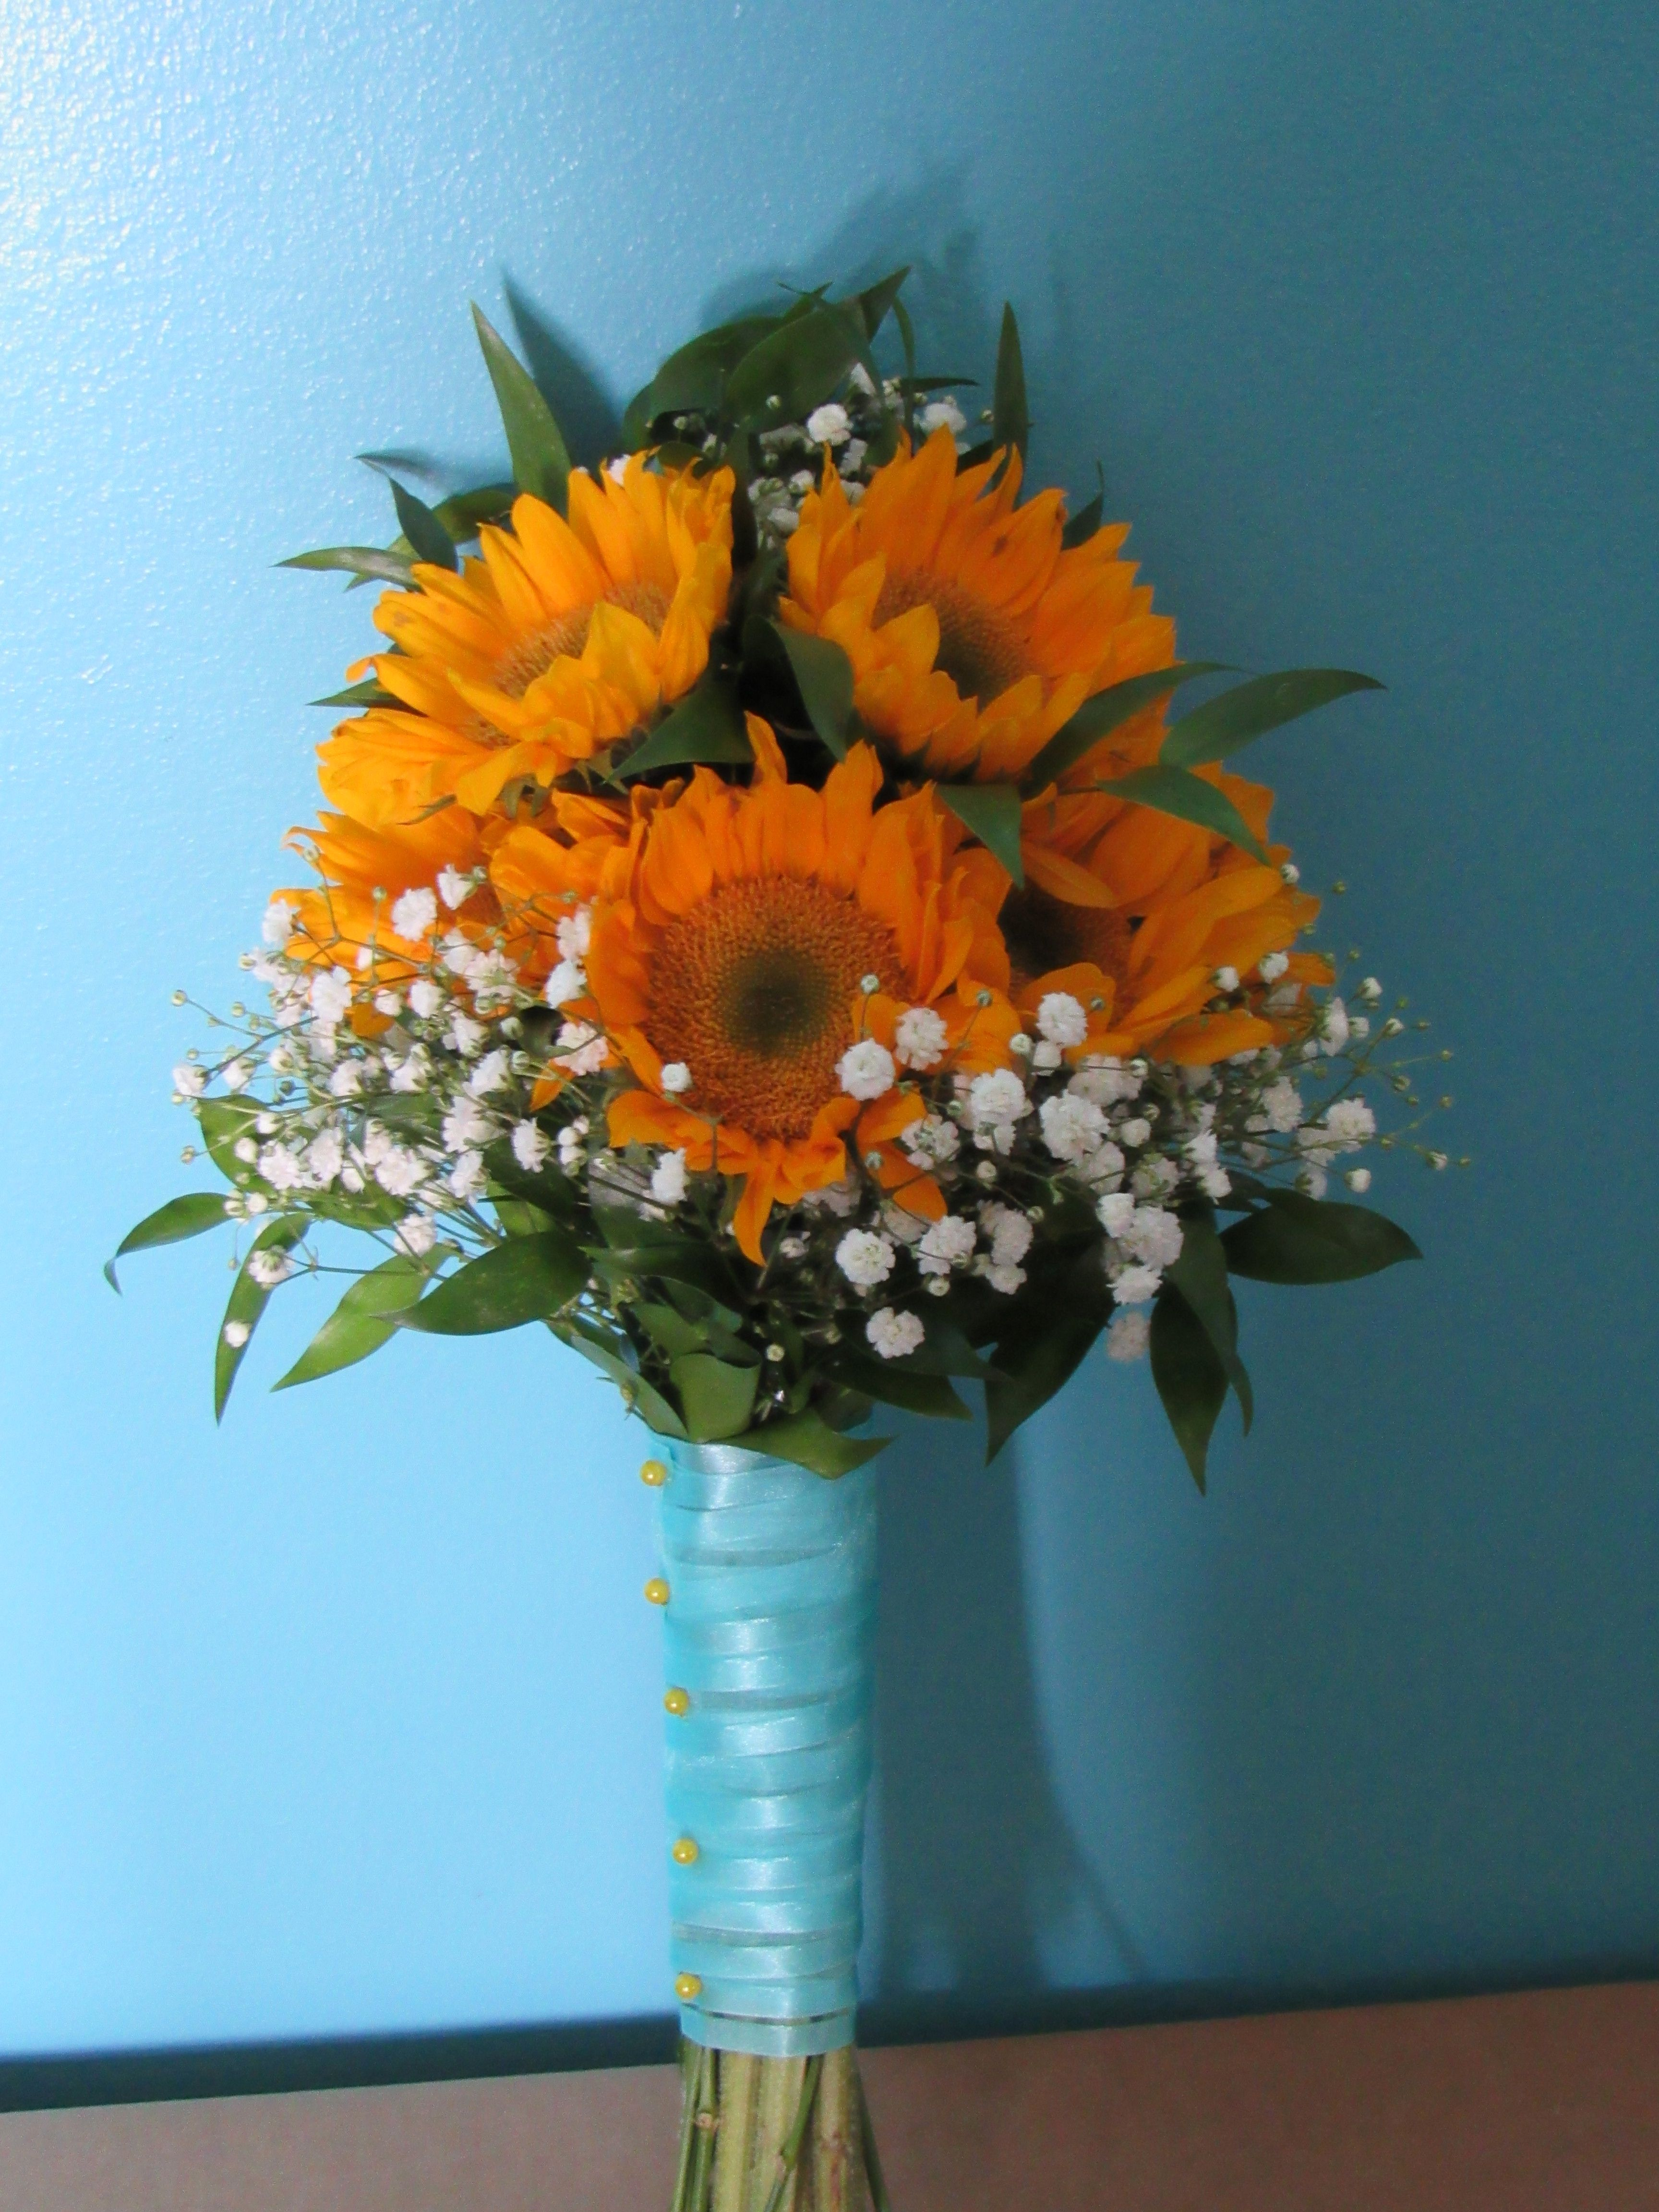 41+ Simple wedding bouquets pictures information